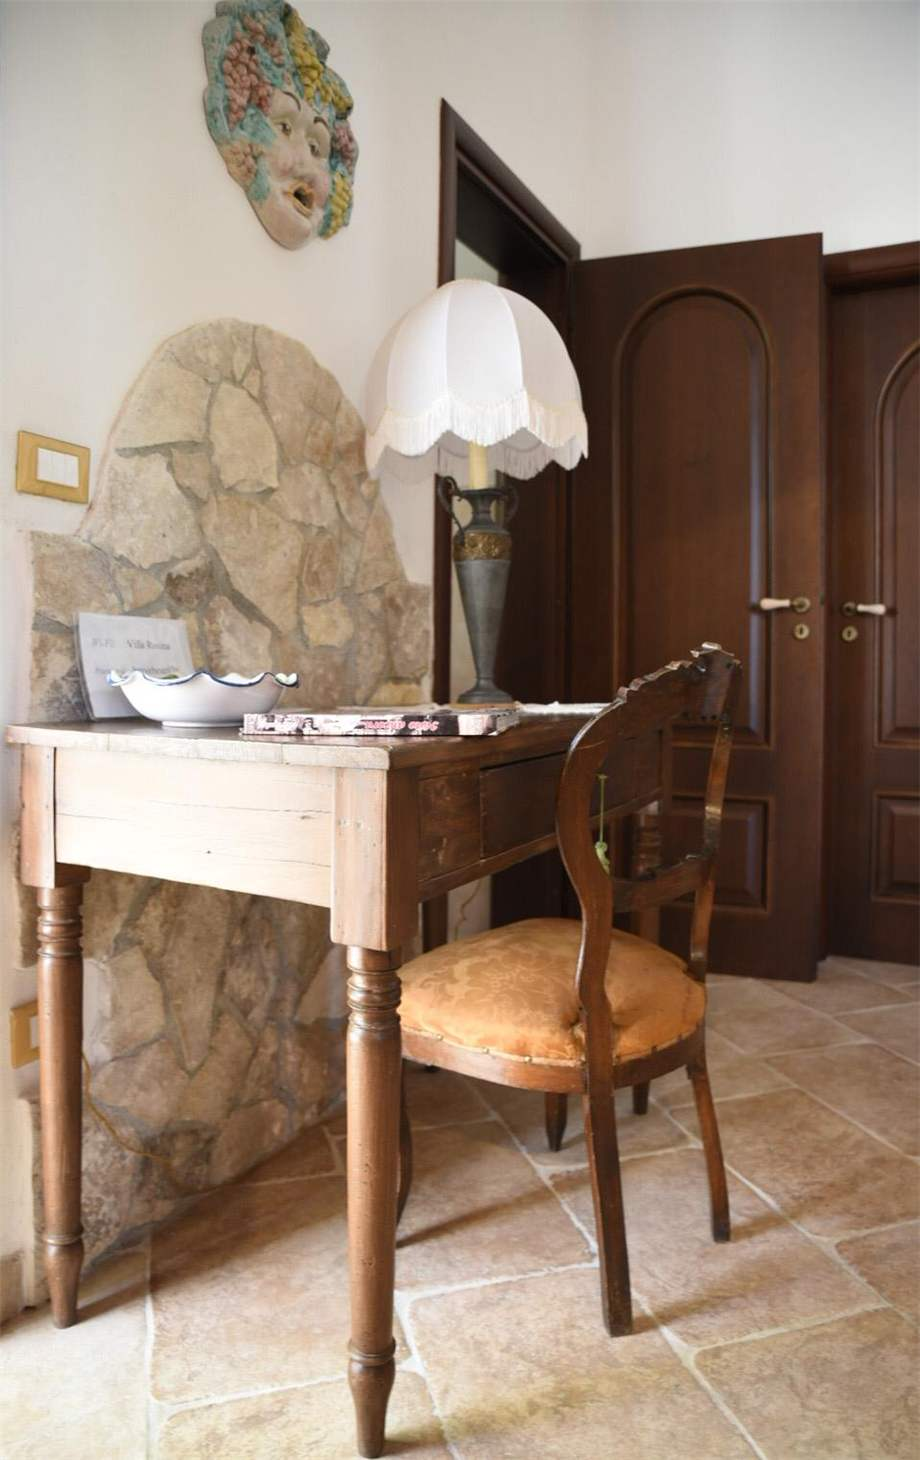 For sale Detached house Noto  #20VN n.20